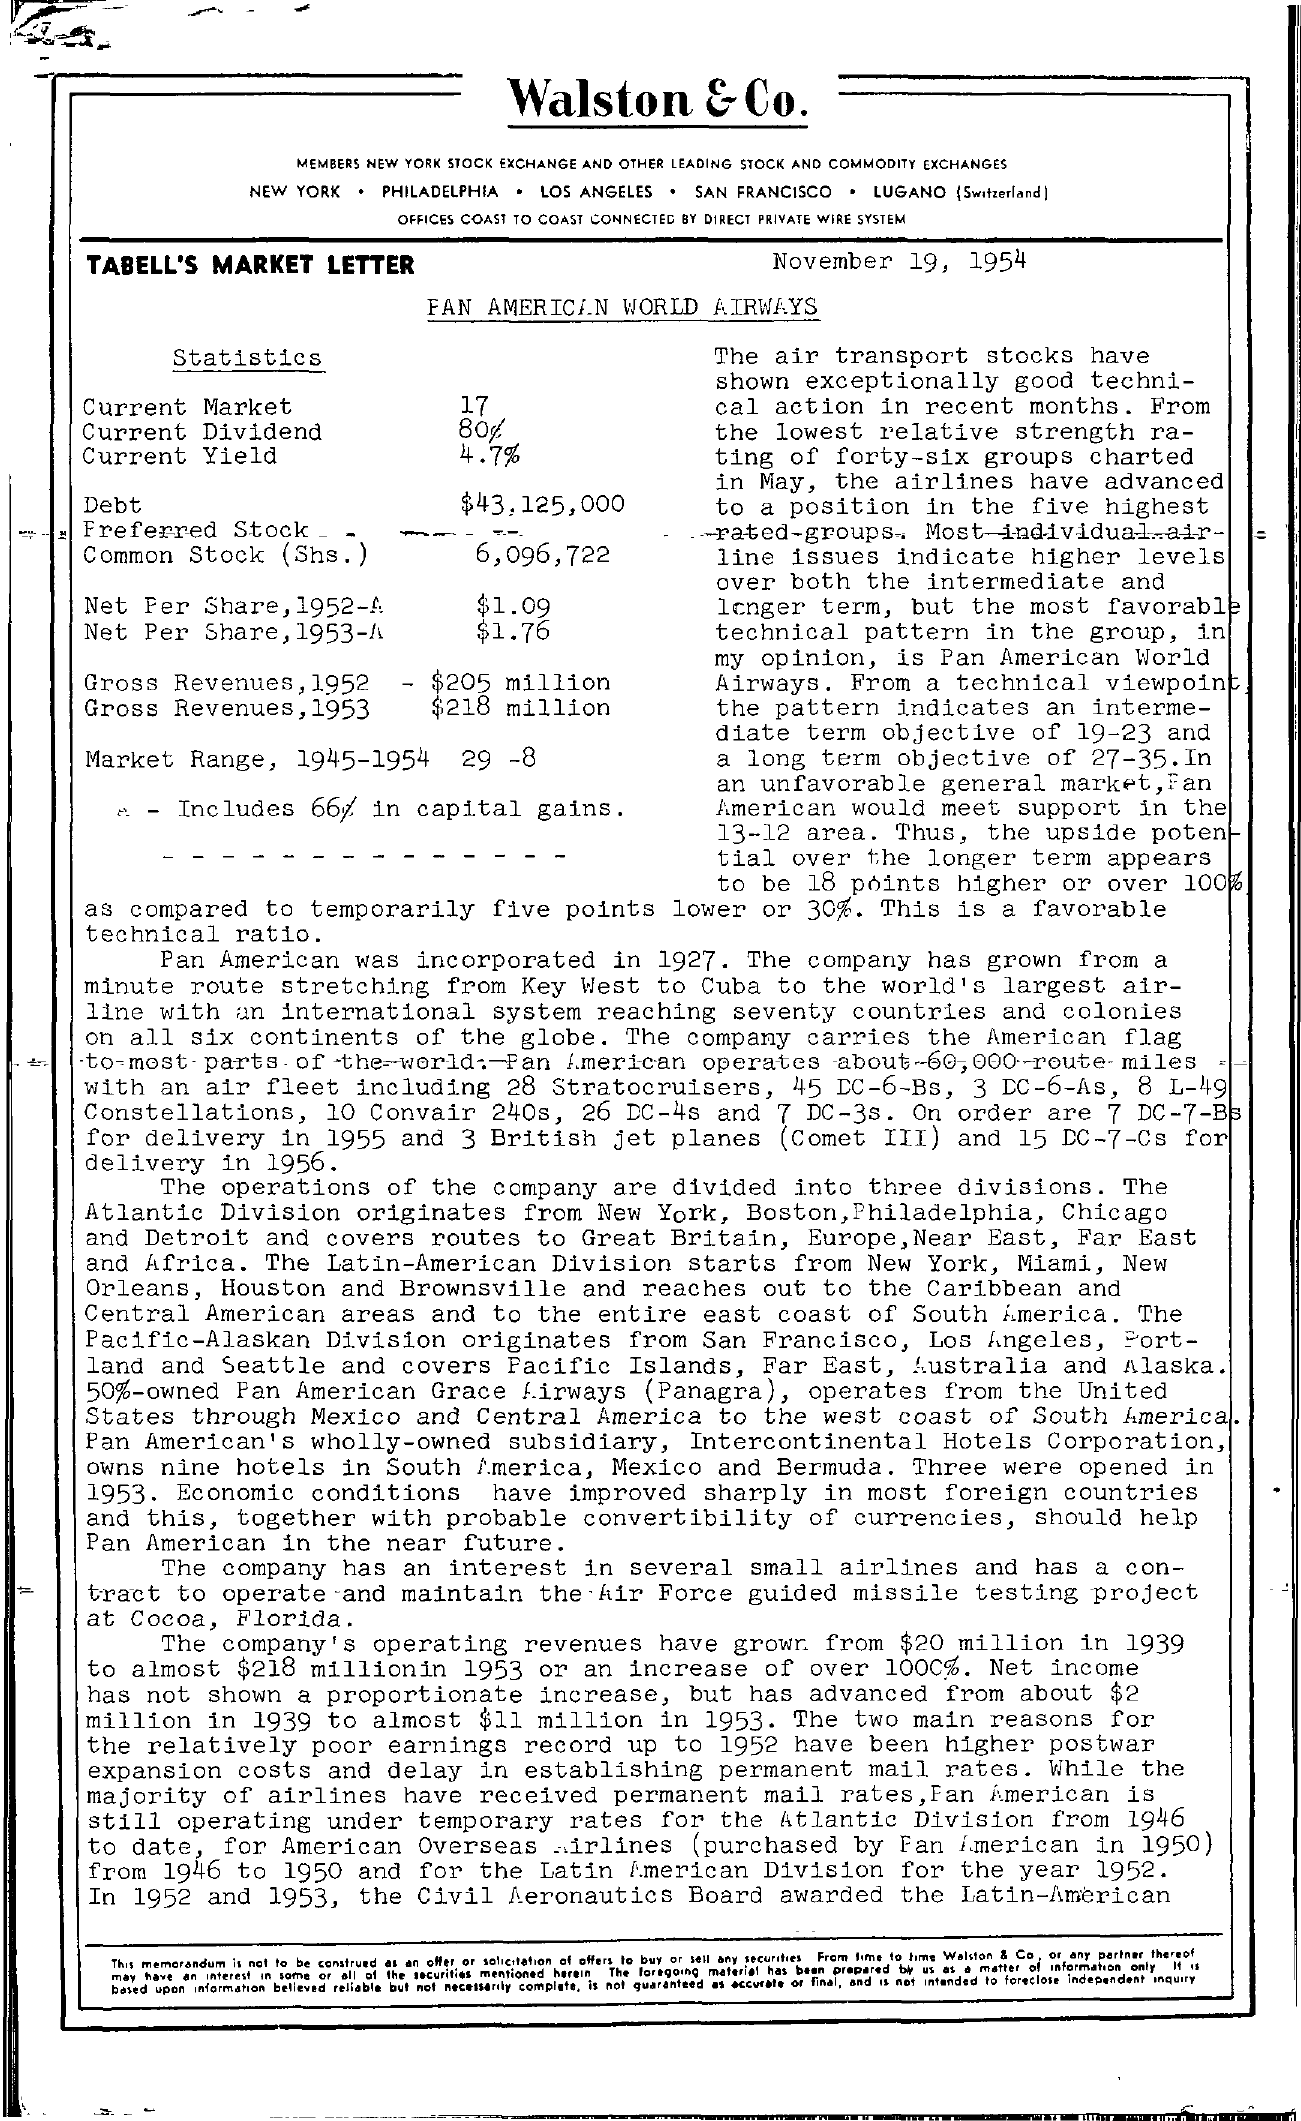 Tabell's Market Letter - November 19, 1954 page 1